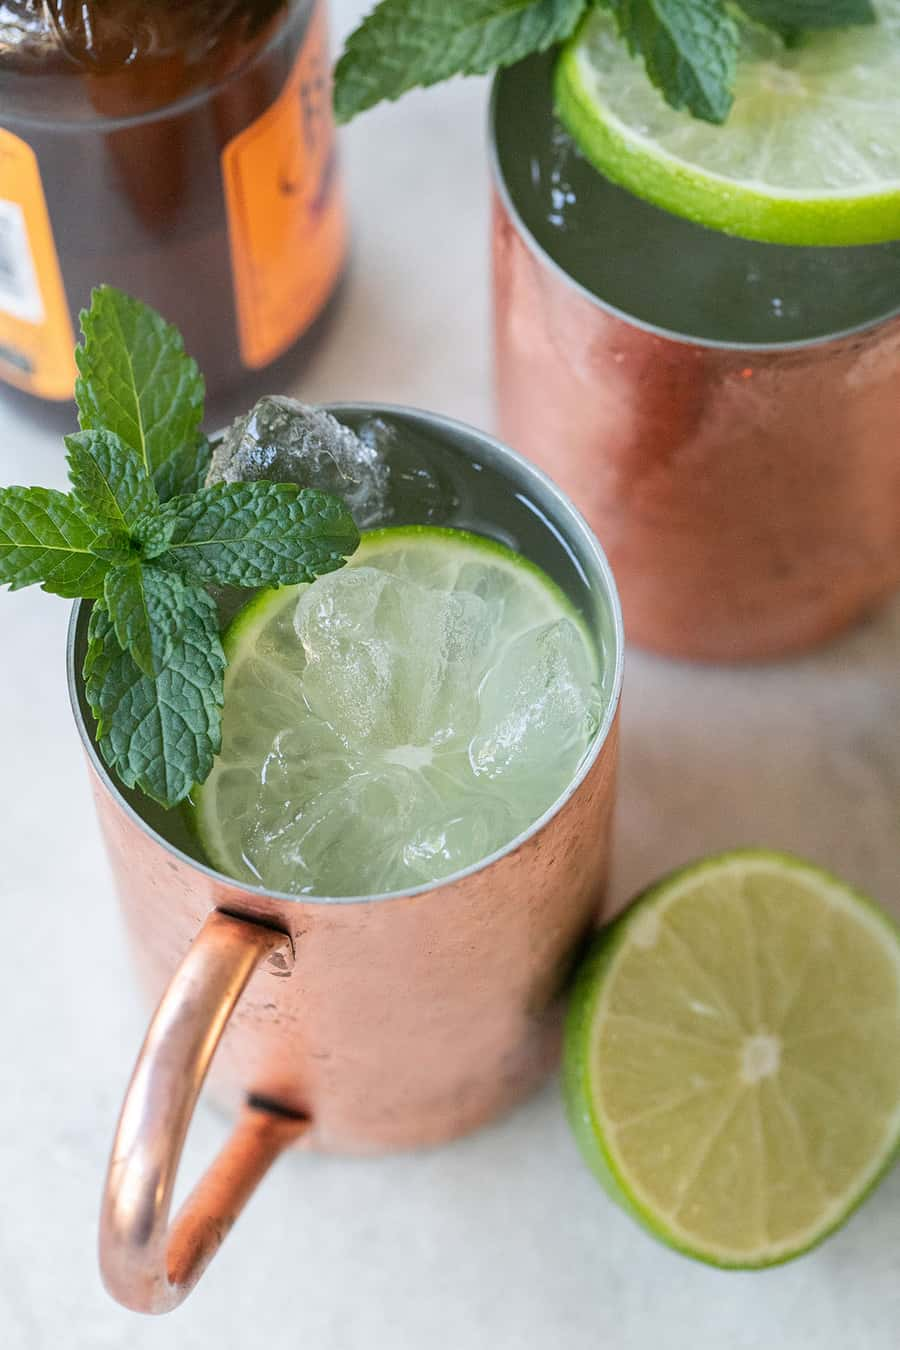 Classic mixed Moscow Mule cocktail